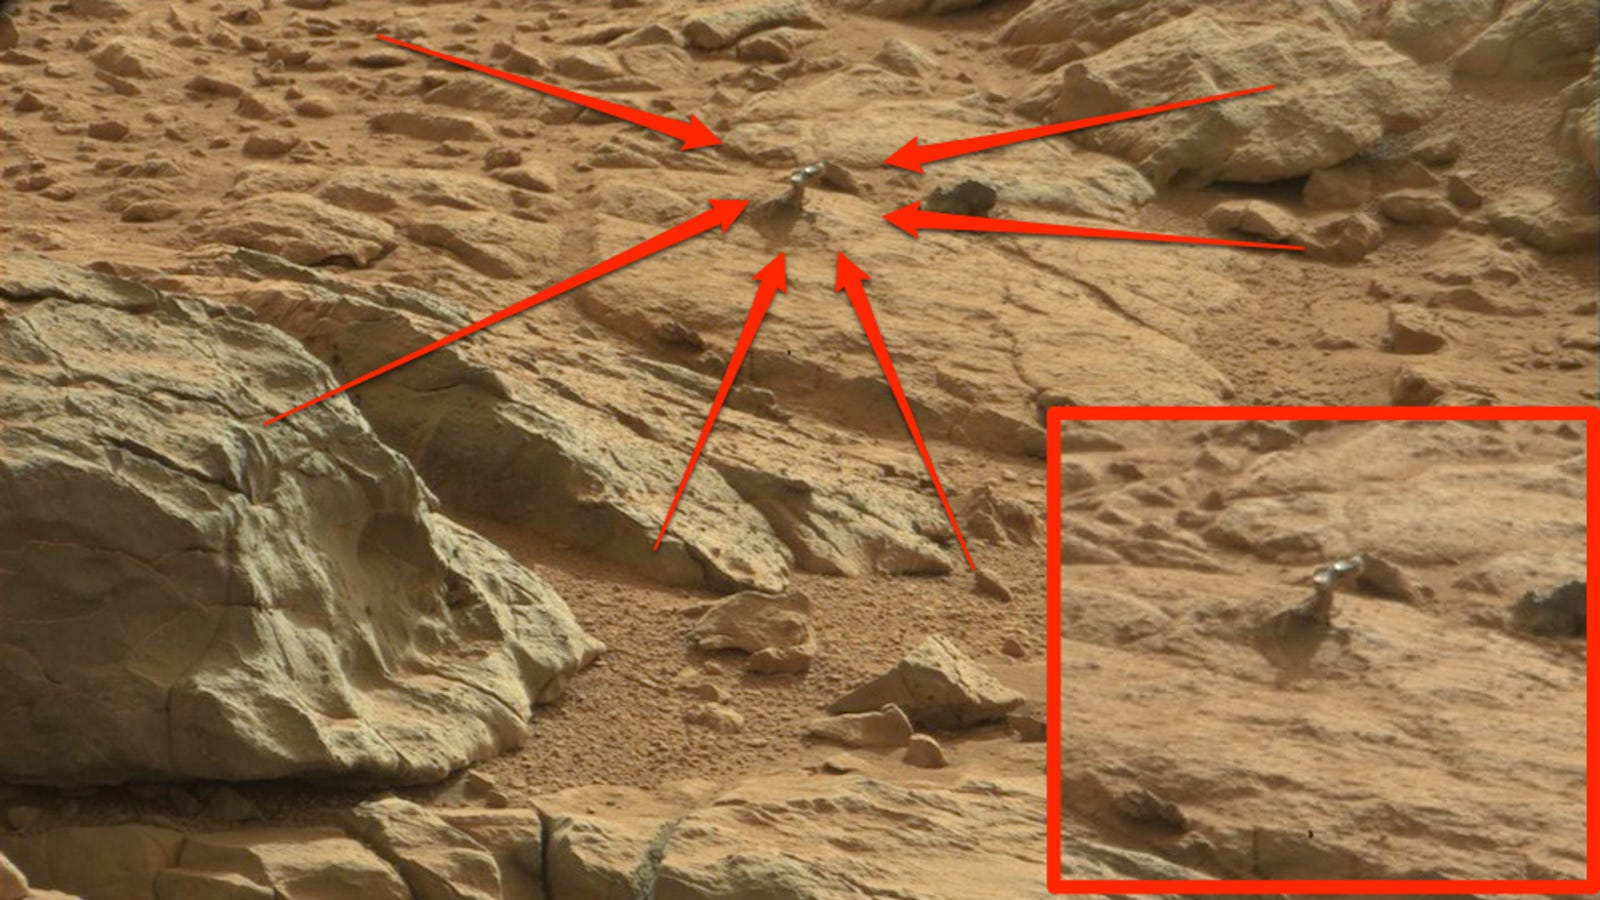 What the Hell Is This Weird Shiny Object on Mars?